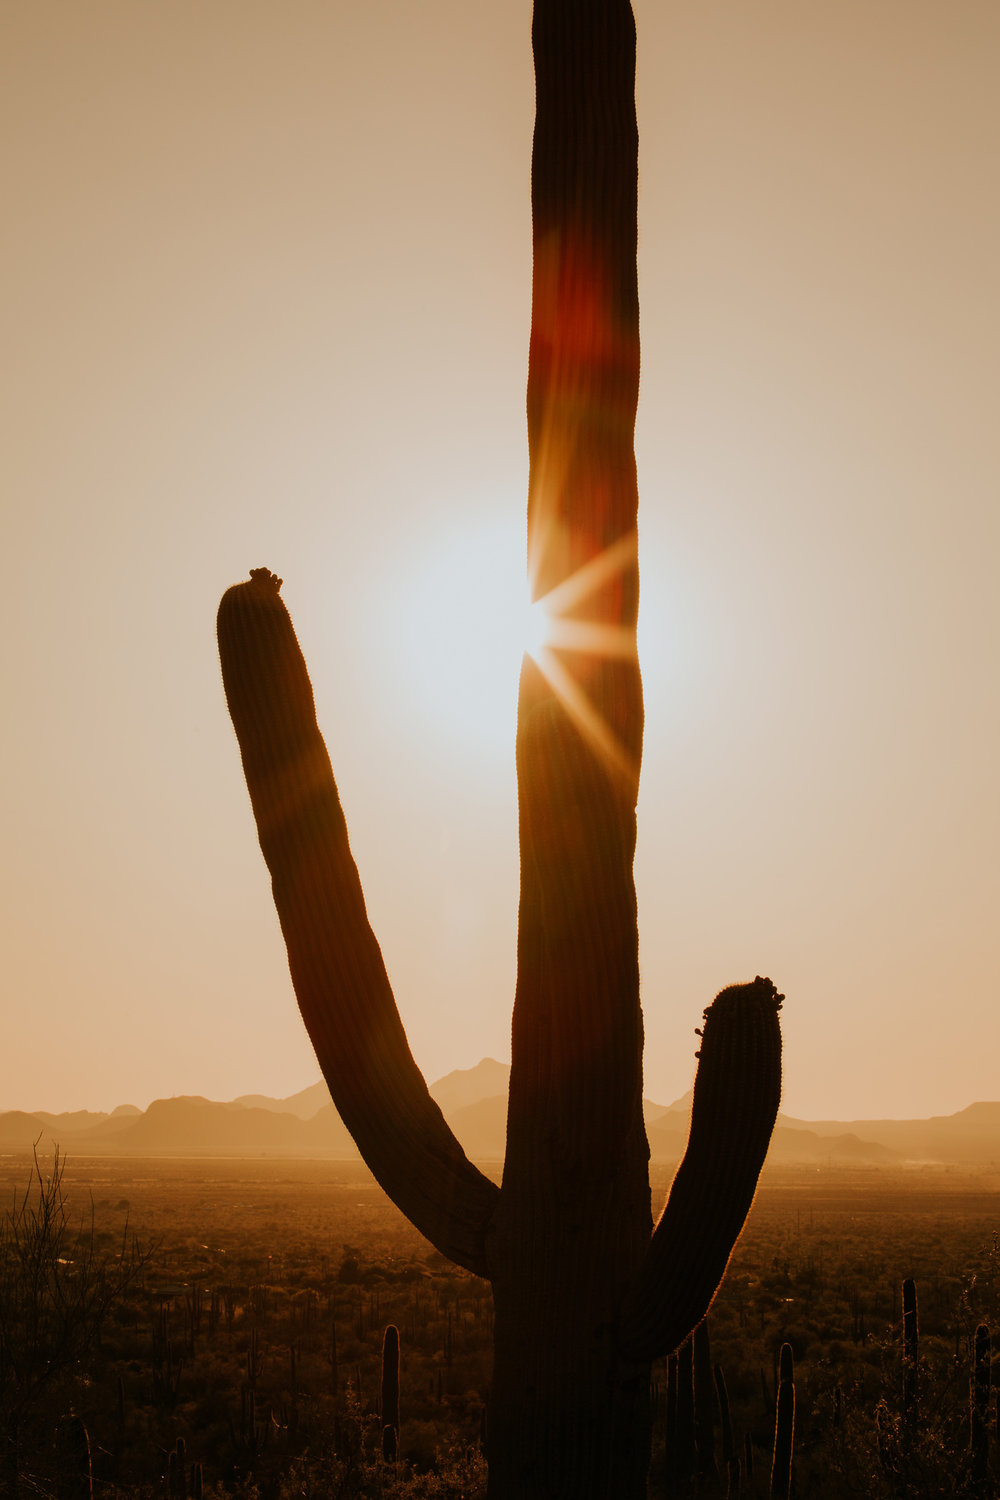 CindyGiovagnoli_Tucson_Arizona_Saguaro_National_Park_cactus_sunset_blooming_spring_sunset_petroglyphs_Native_American_indigenous-023.jpg